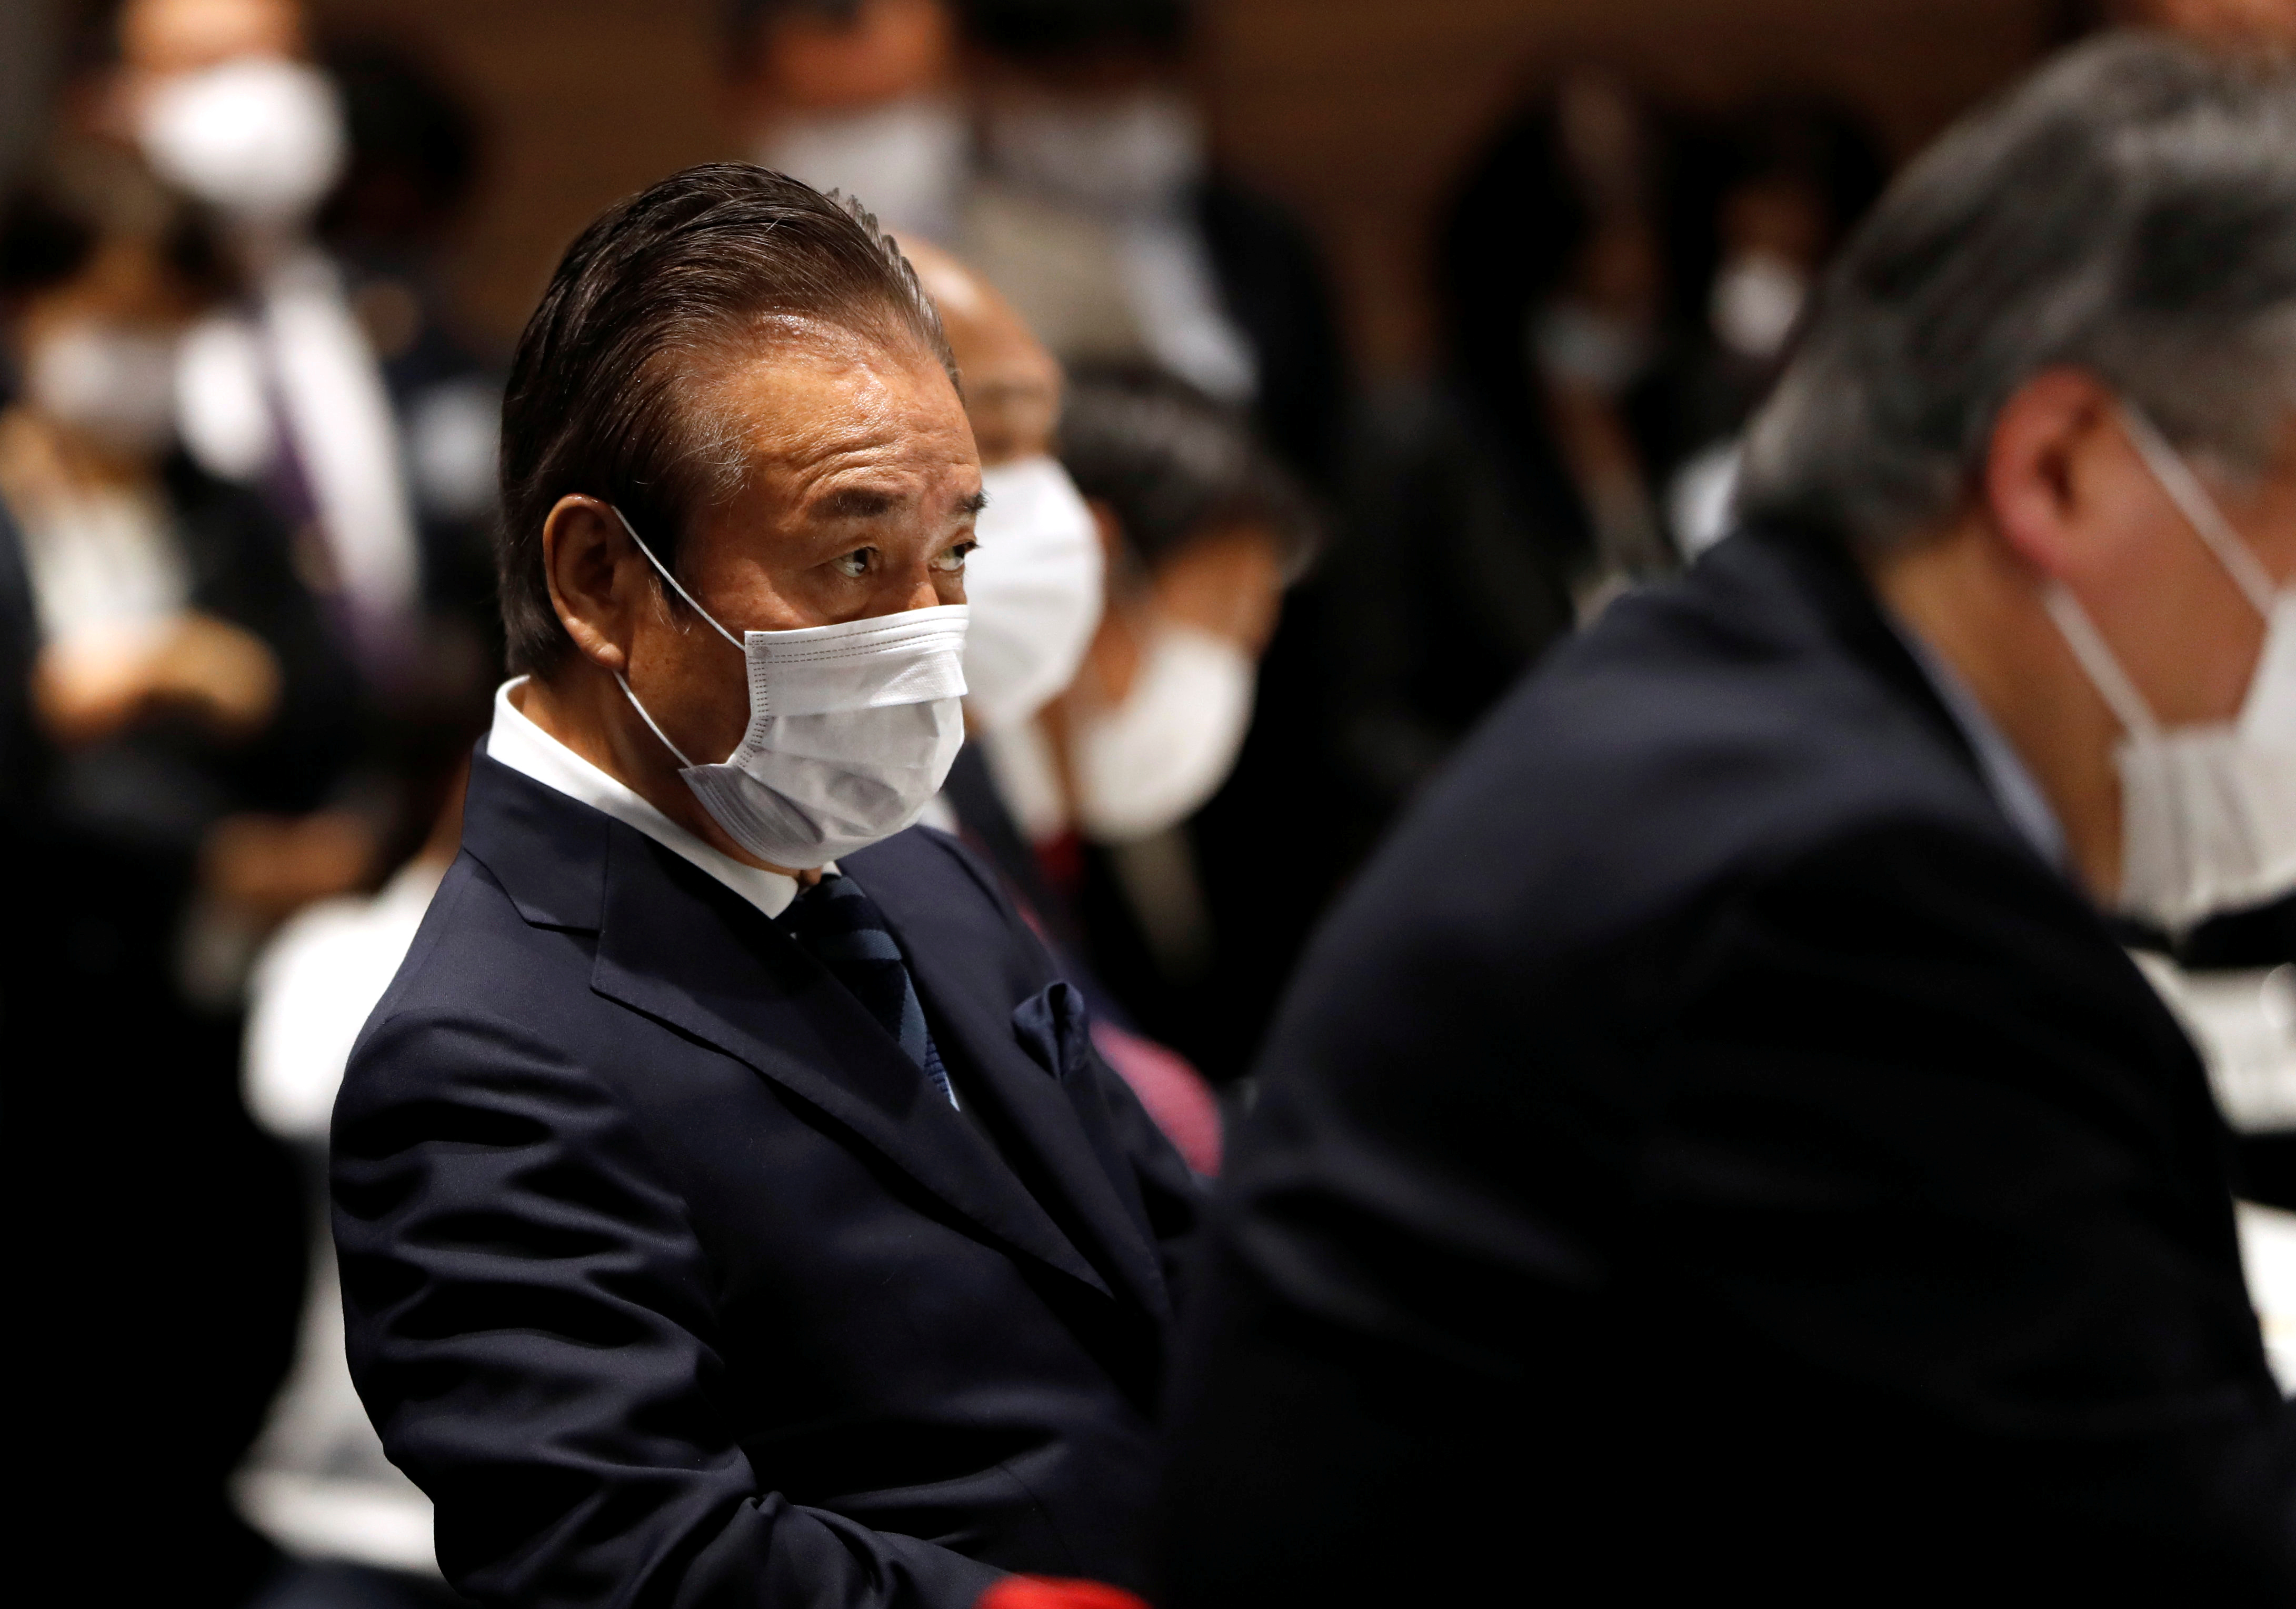 The Tokyo Organising Committee of the Olympic and Paralympic Games (Tokyo 2020) Executive Board member Haruyuki Takahashi, wearing a protective face mask following an outbreak of the coronavirus disease (COVID-19), is seen during Tokyo 2020 Executive Board Meeting in Tokyo, Japan March 30, 2020.  REUTERS/Issei Kato/Pool